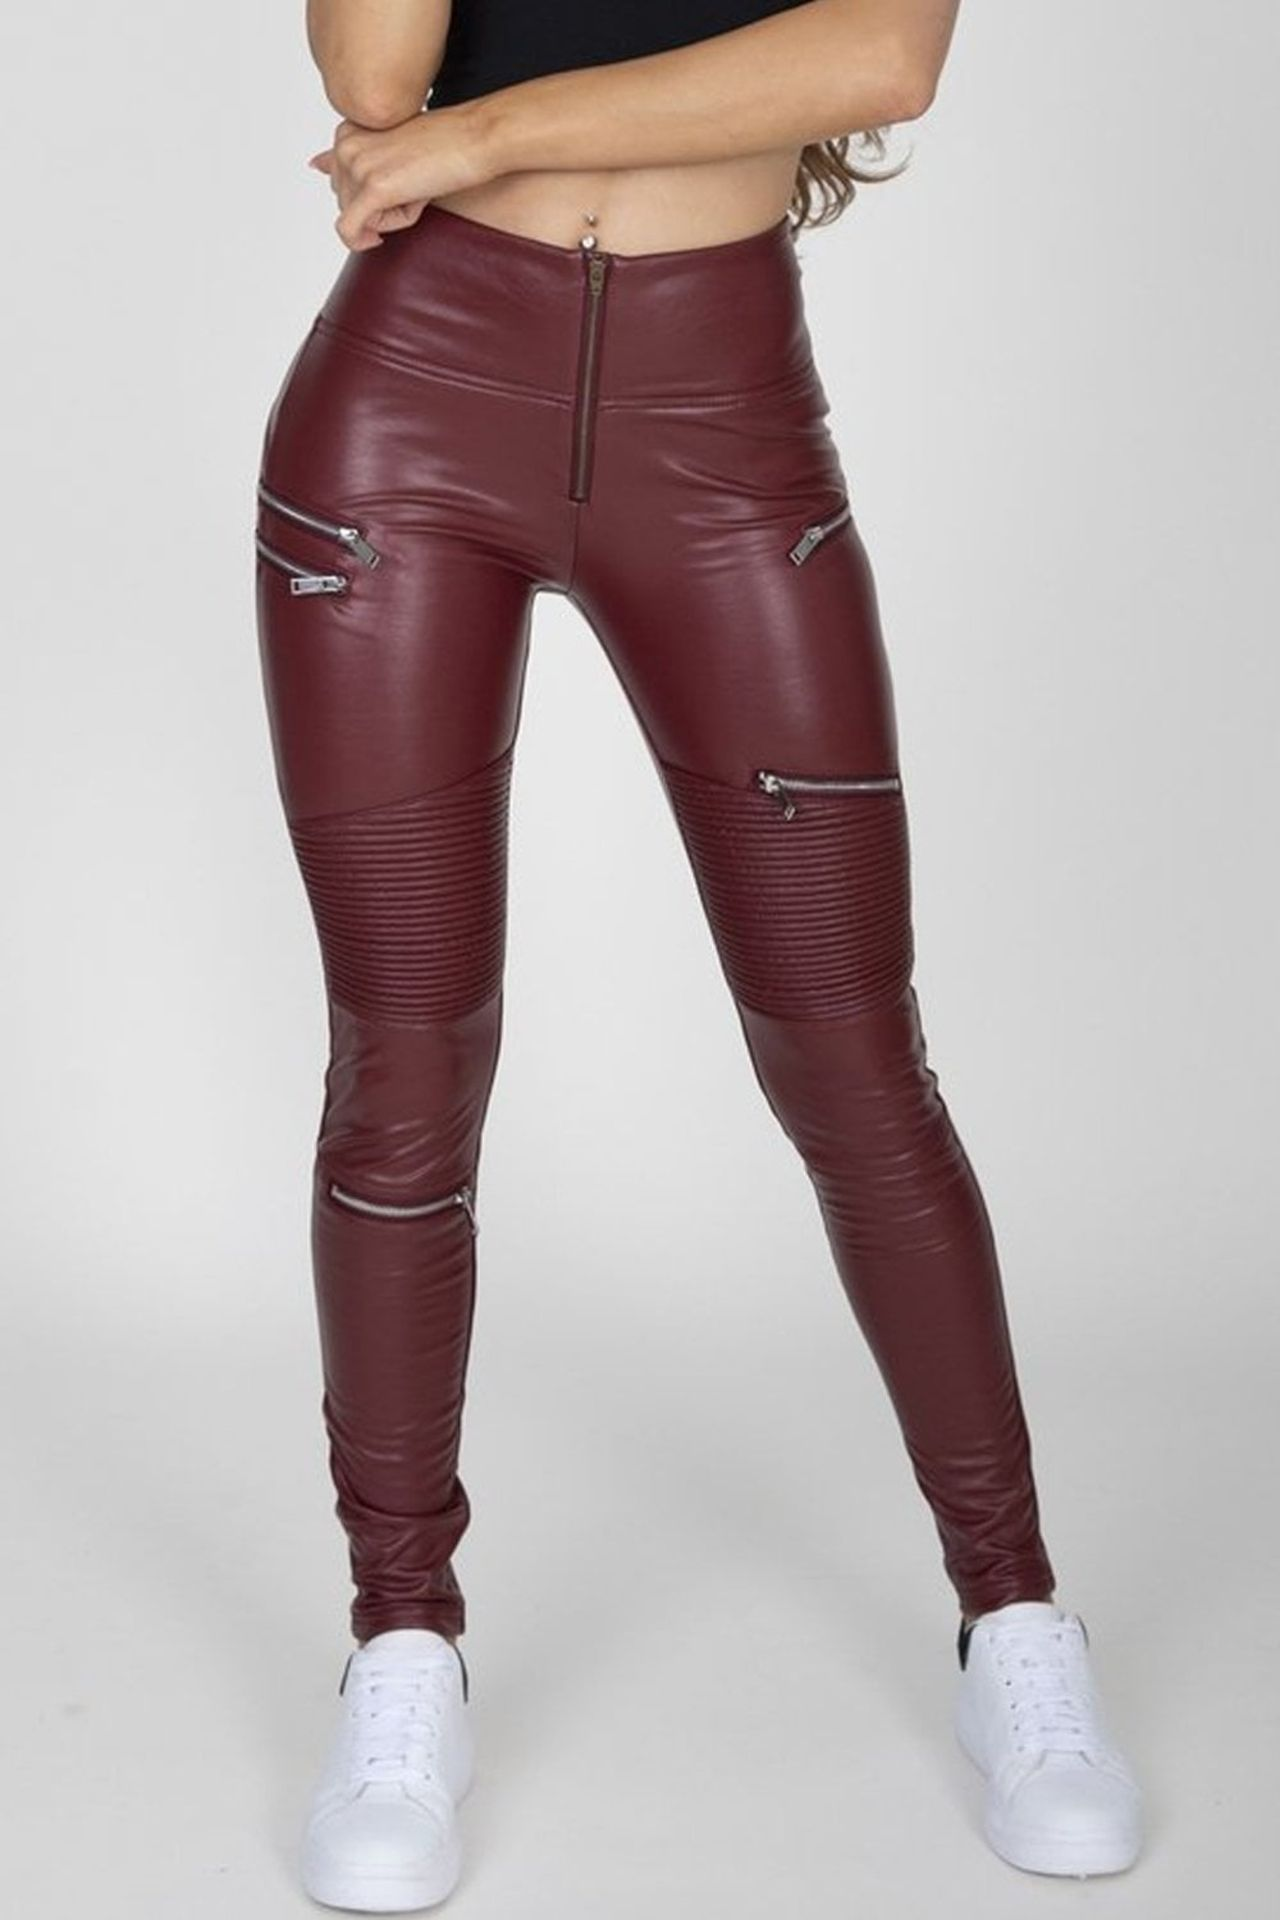 12 X BRAND NEW HUGZ JEANS DESIGNER BRANDED - ALL SIZE 6 - XS - IE. JEANS / FAUX LEATHERS / - Image 3 of 4